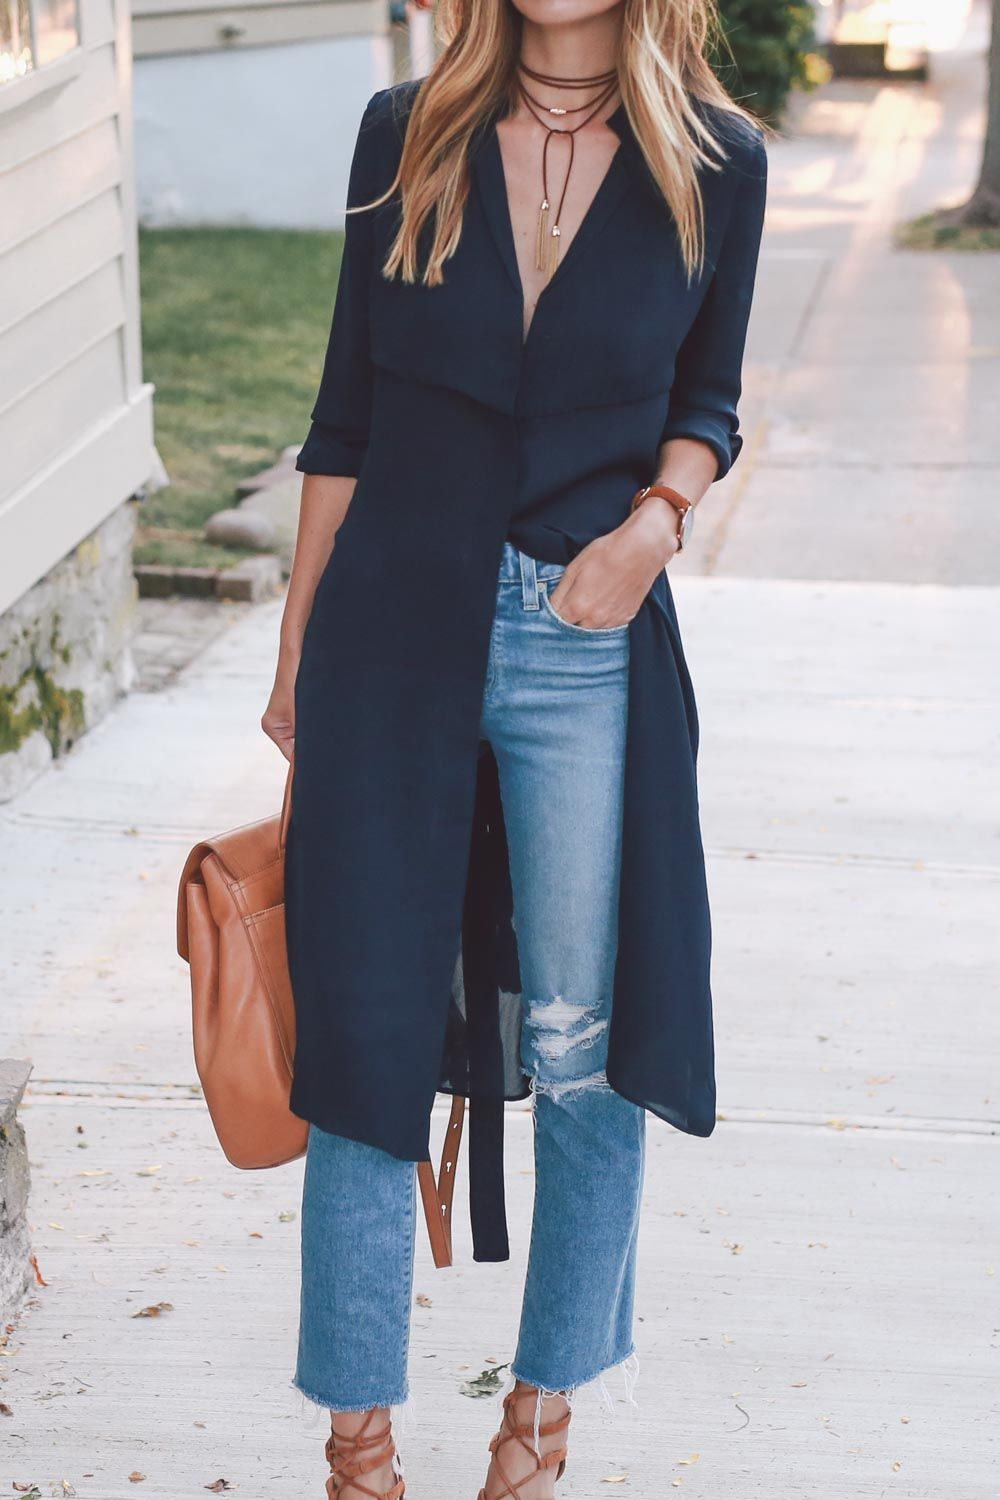 f4bfbe6477 How to Style A Trench Dress